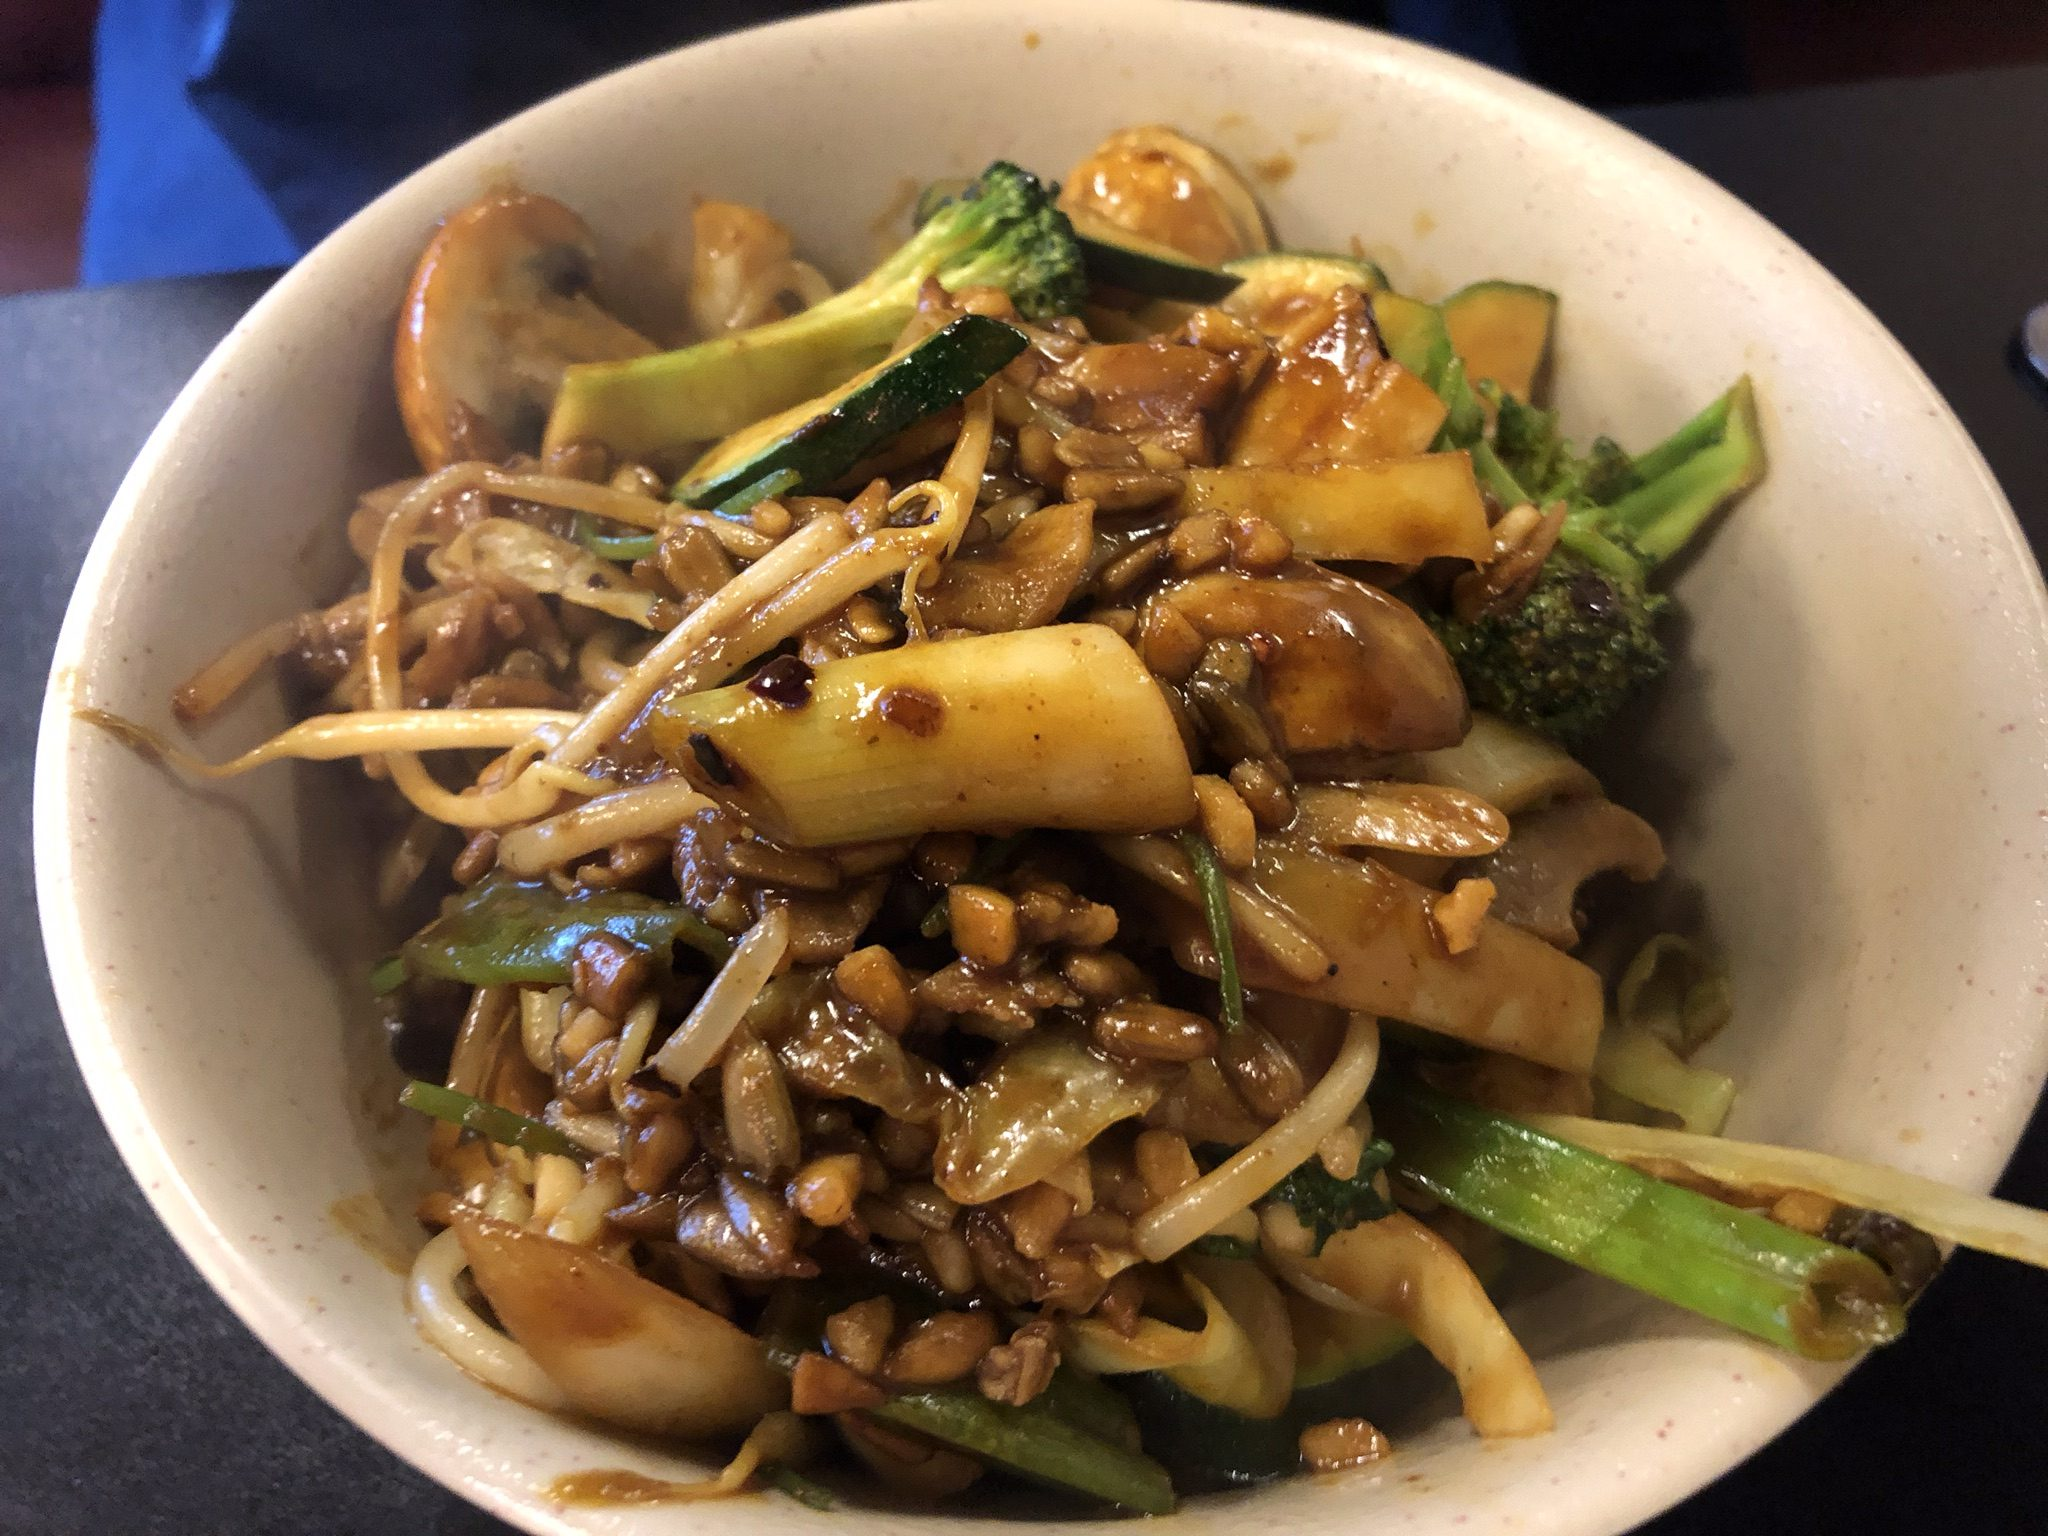 Beef and Veggies at Hongs Mongolian – March 26 2019